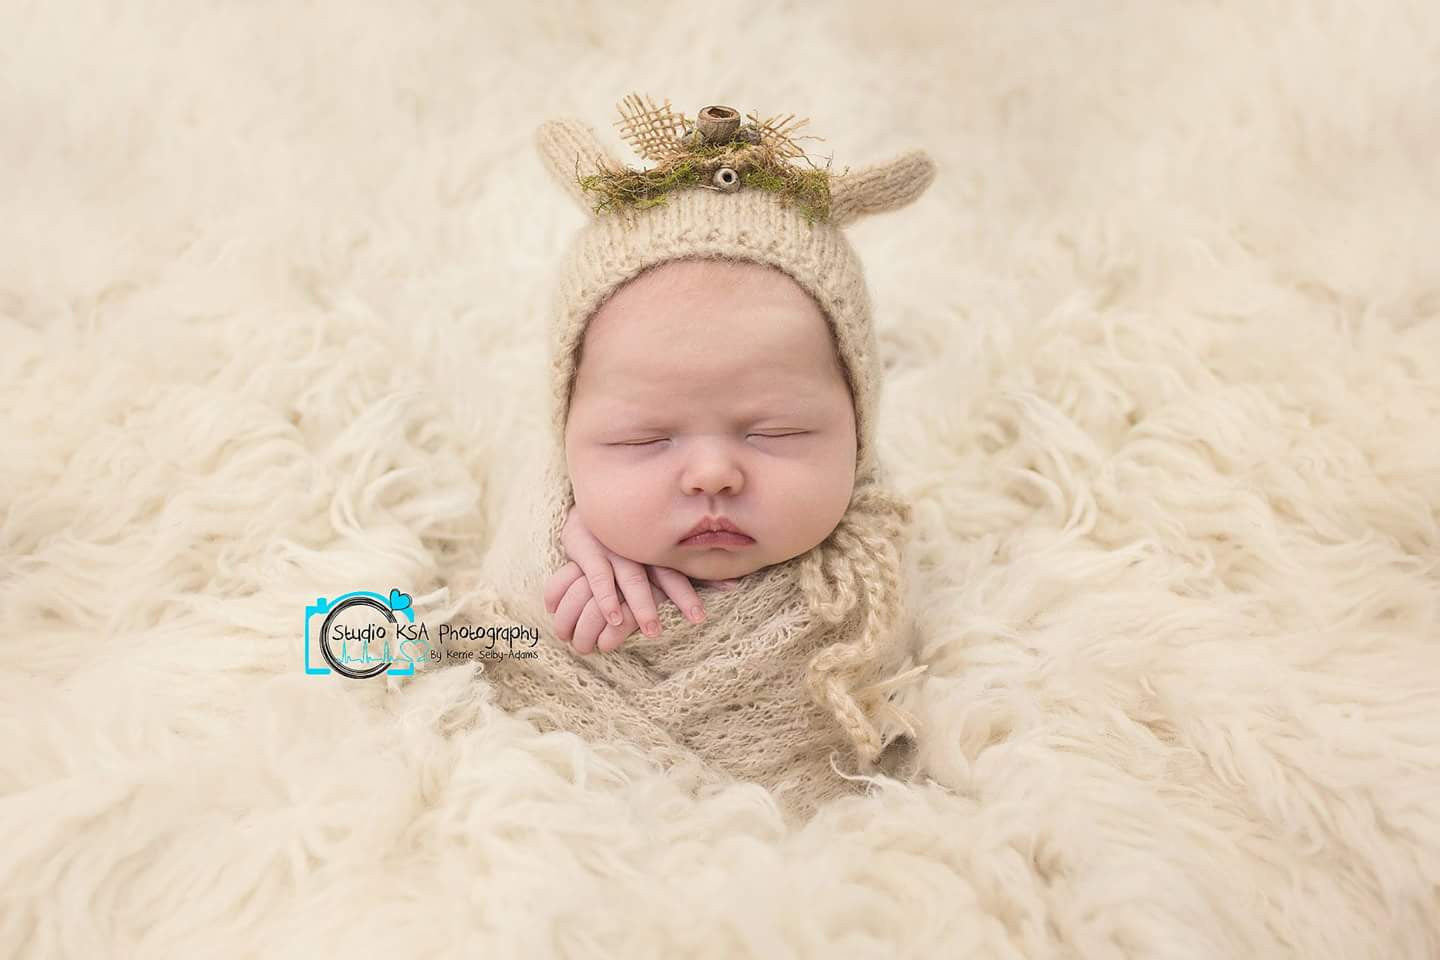 Gumnut and Bloom,gumnut & bloom,boy photography props,